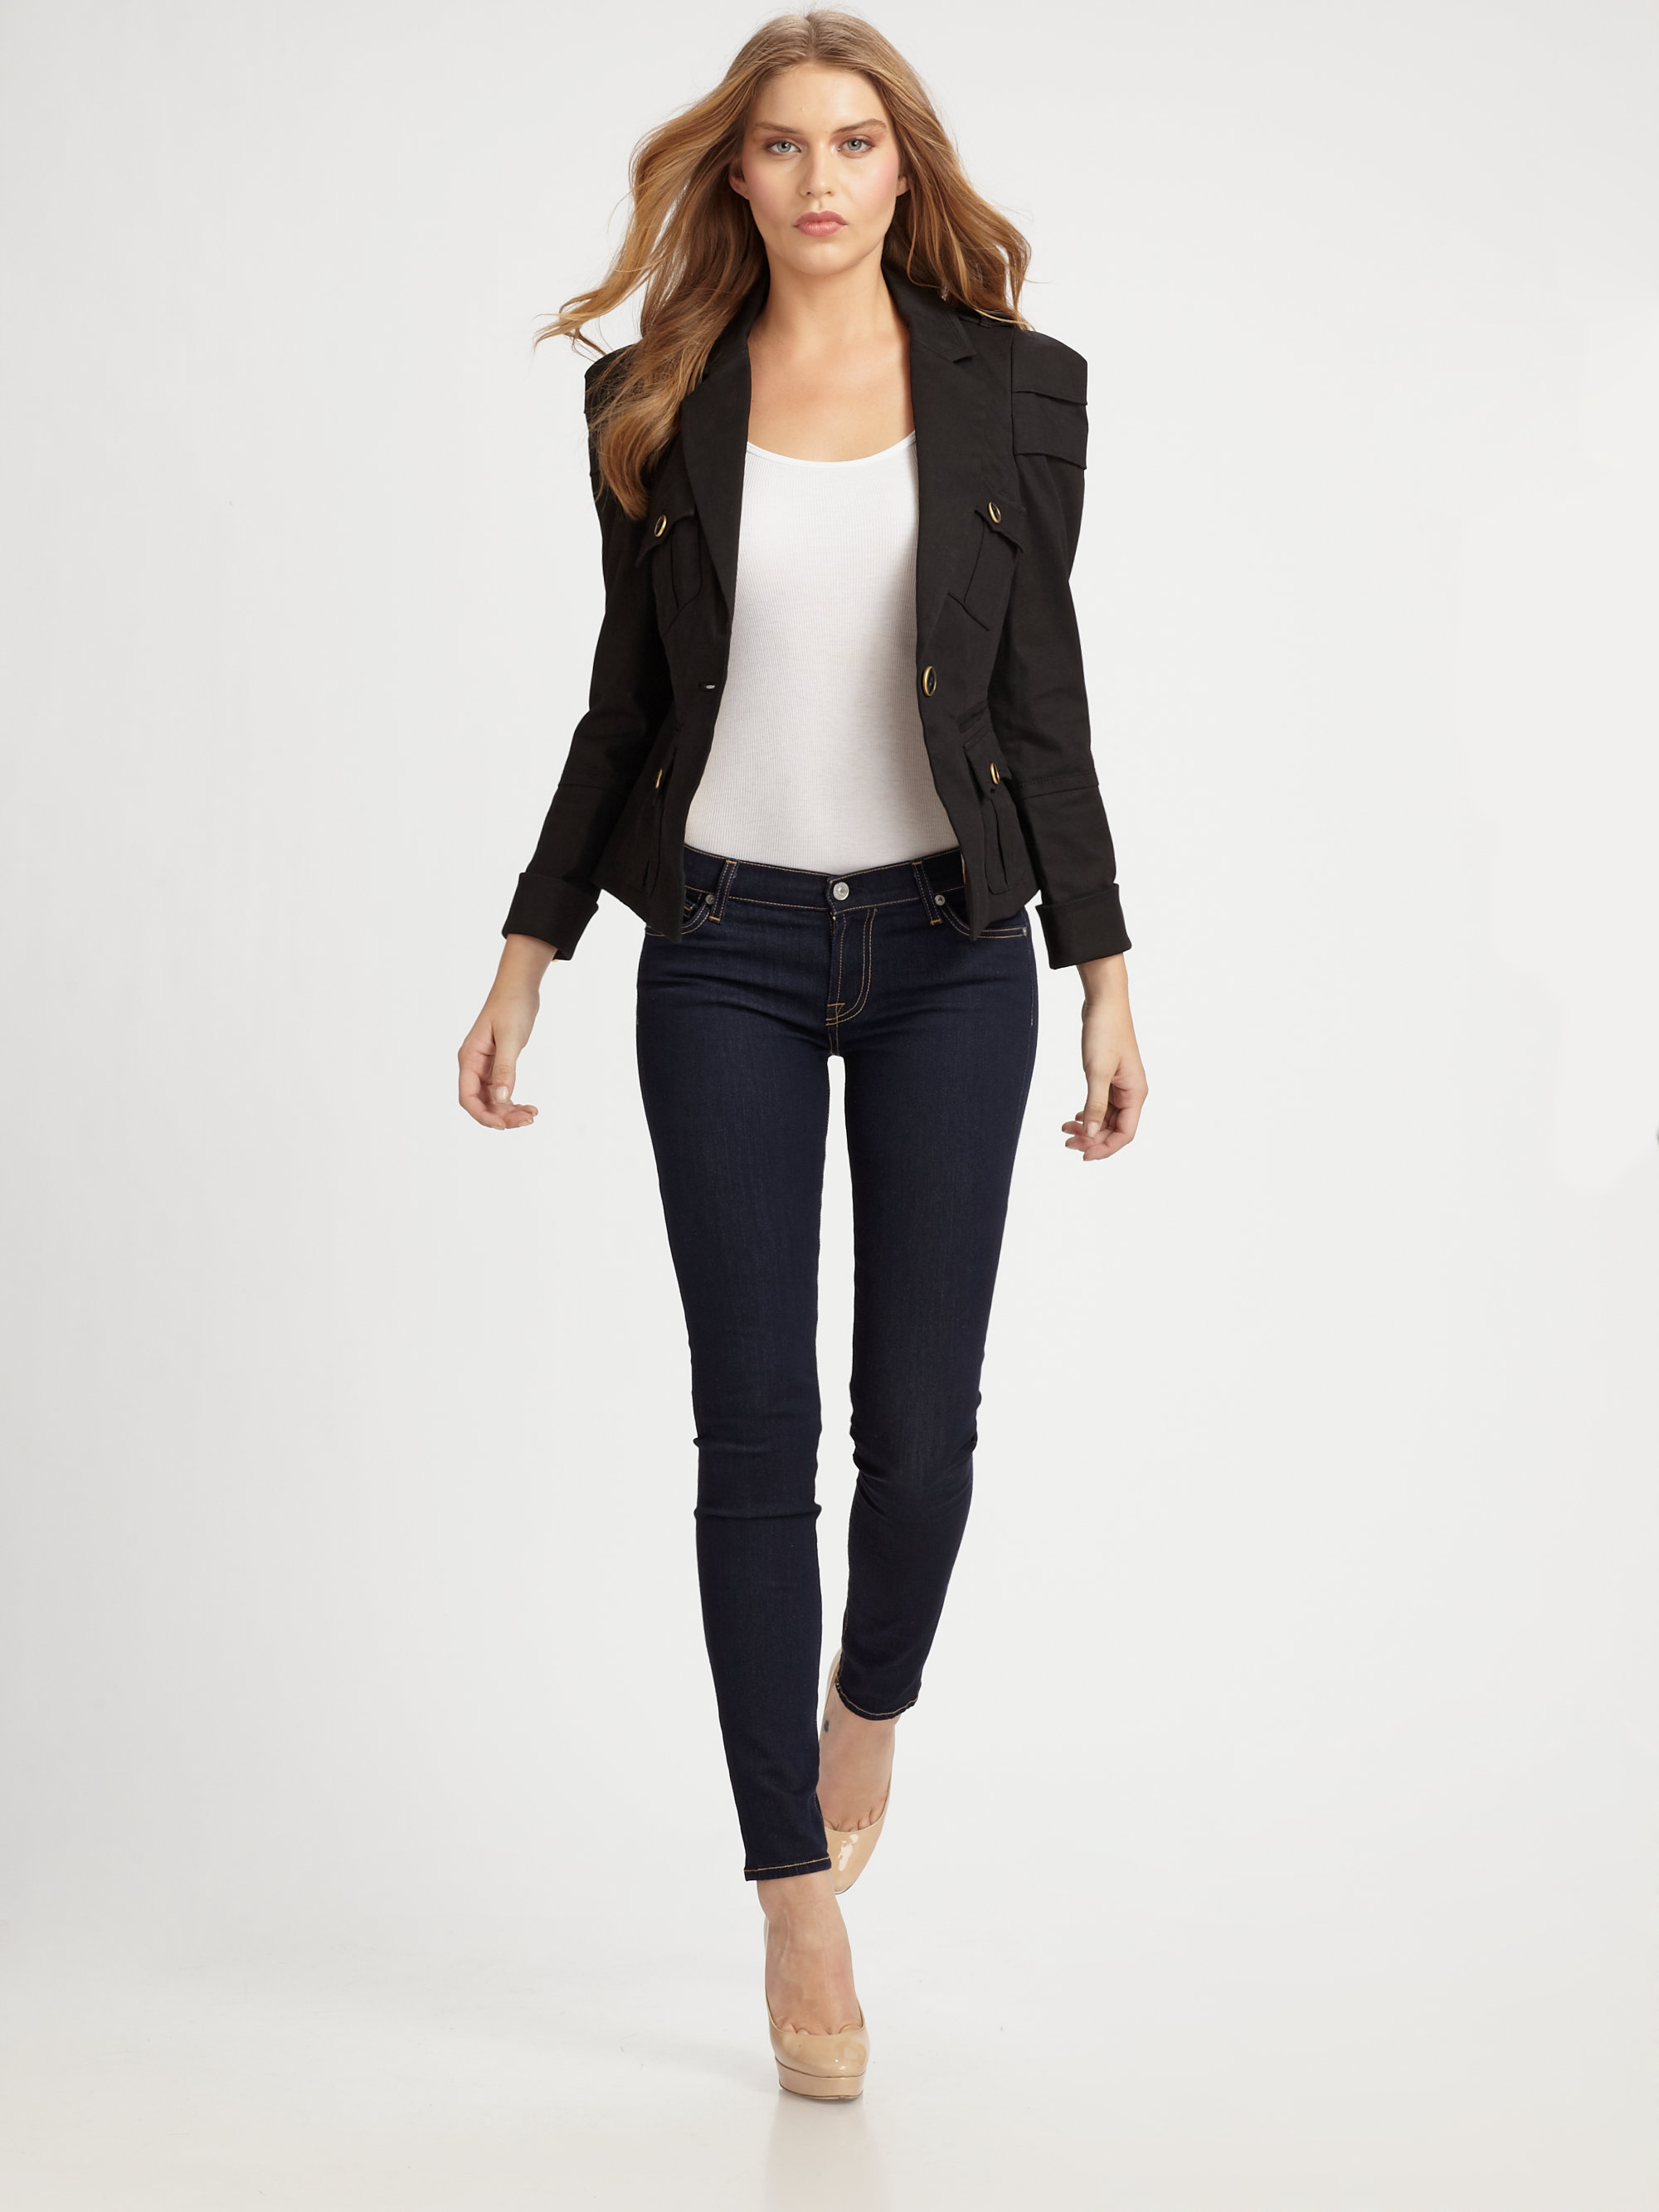 Find great deals on eBay for casual women blazers. Shop with confidence.